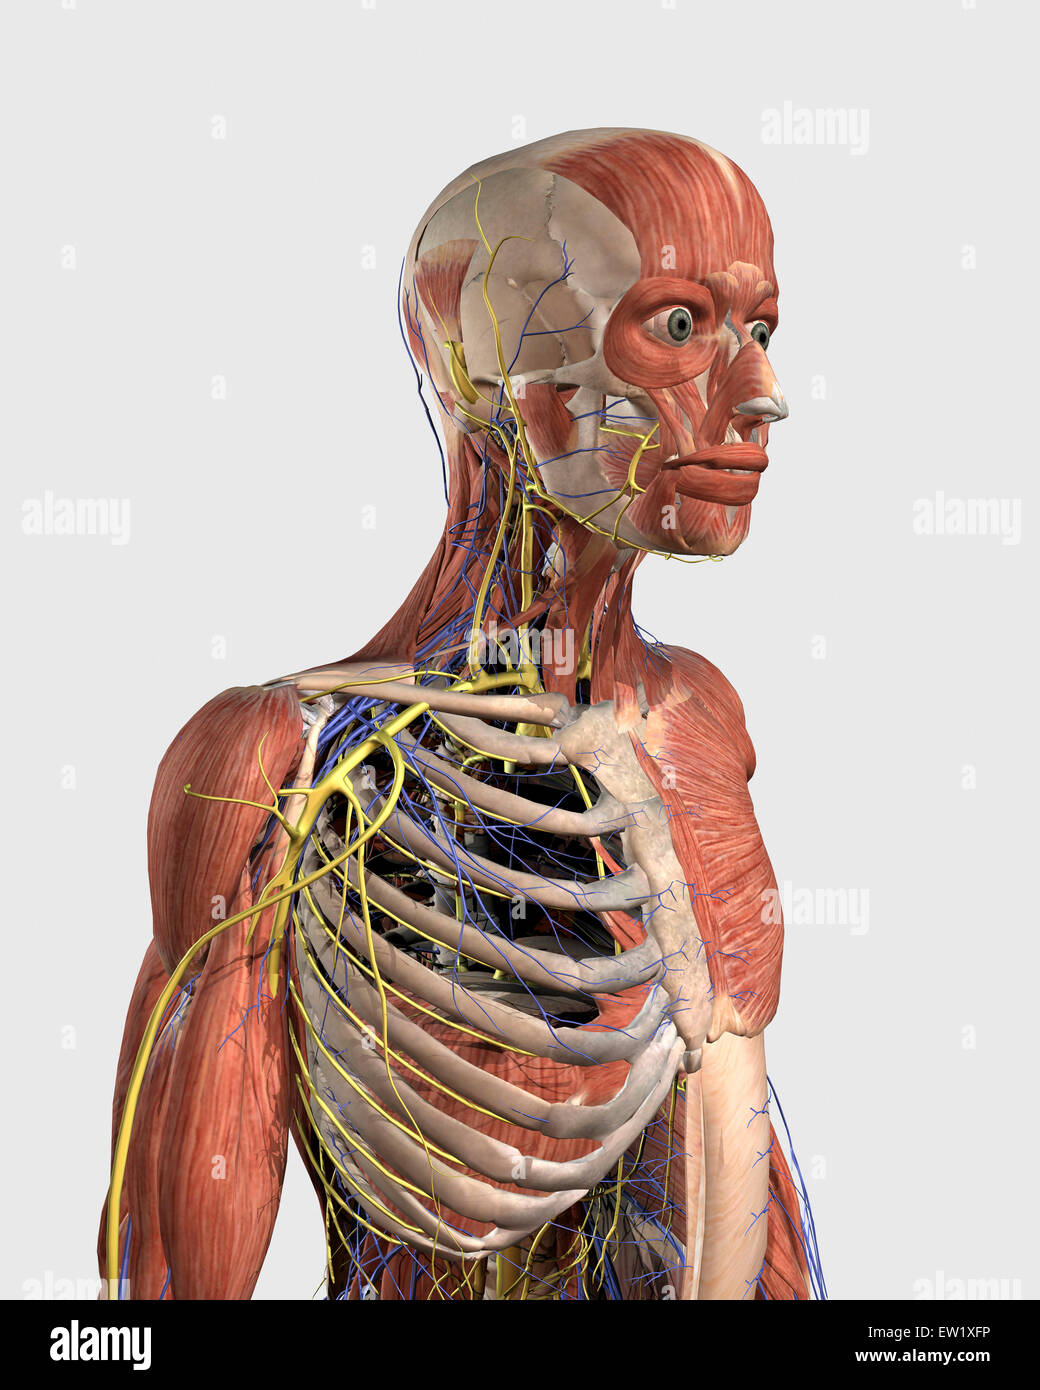 Human upper body showing muscle parts, axial skeleton, veins and ...